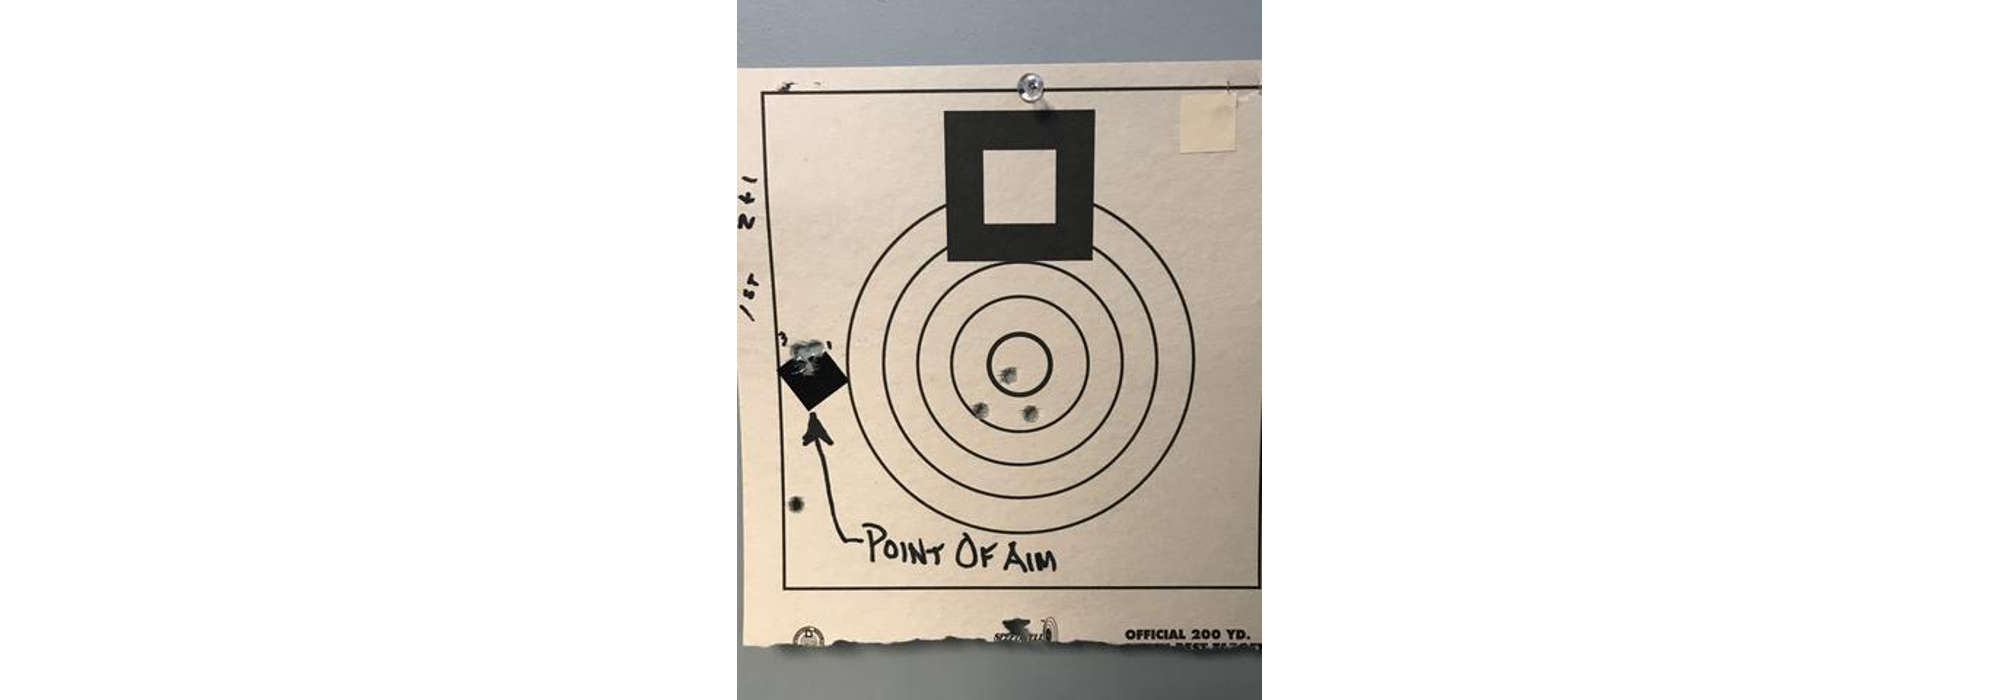 zeroing---point-of-aim-edited